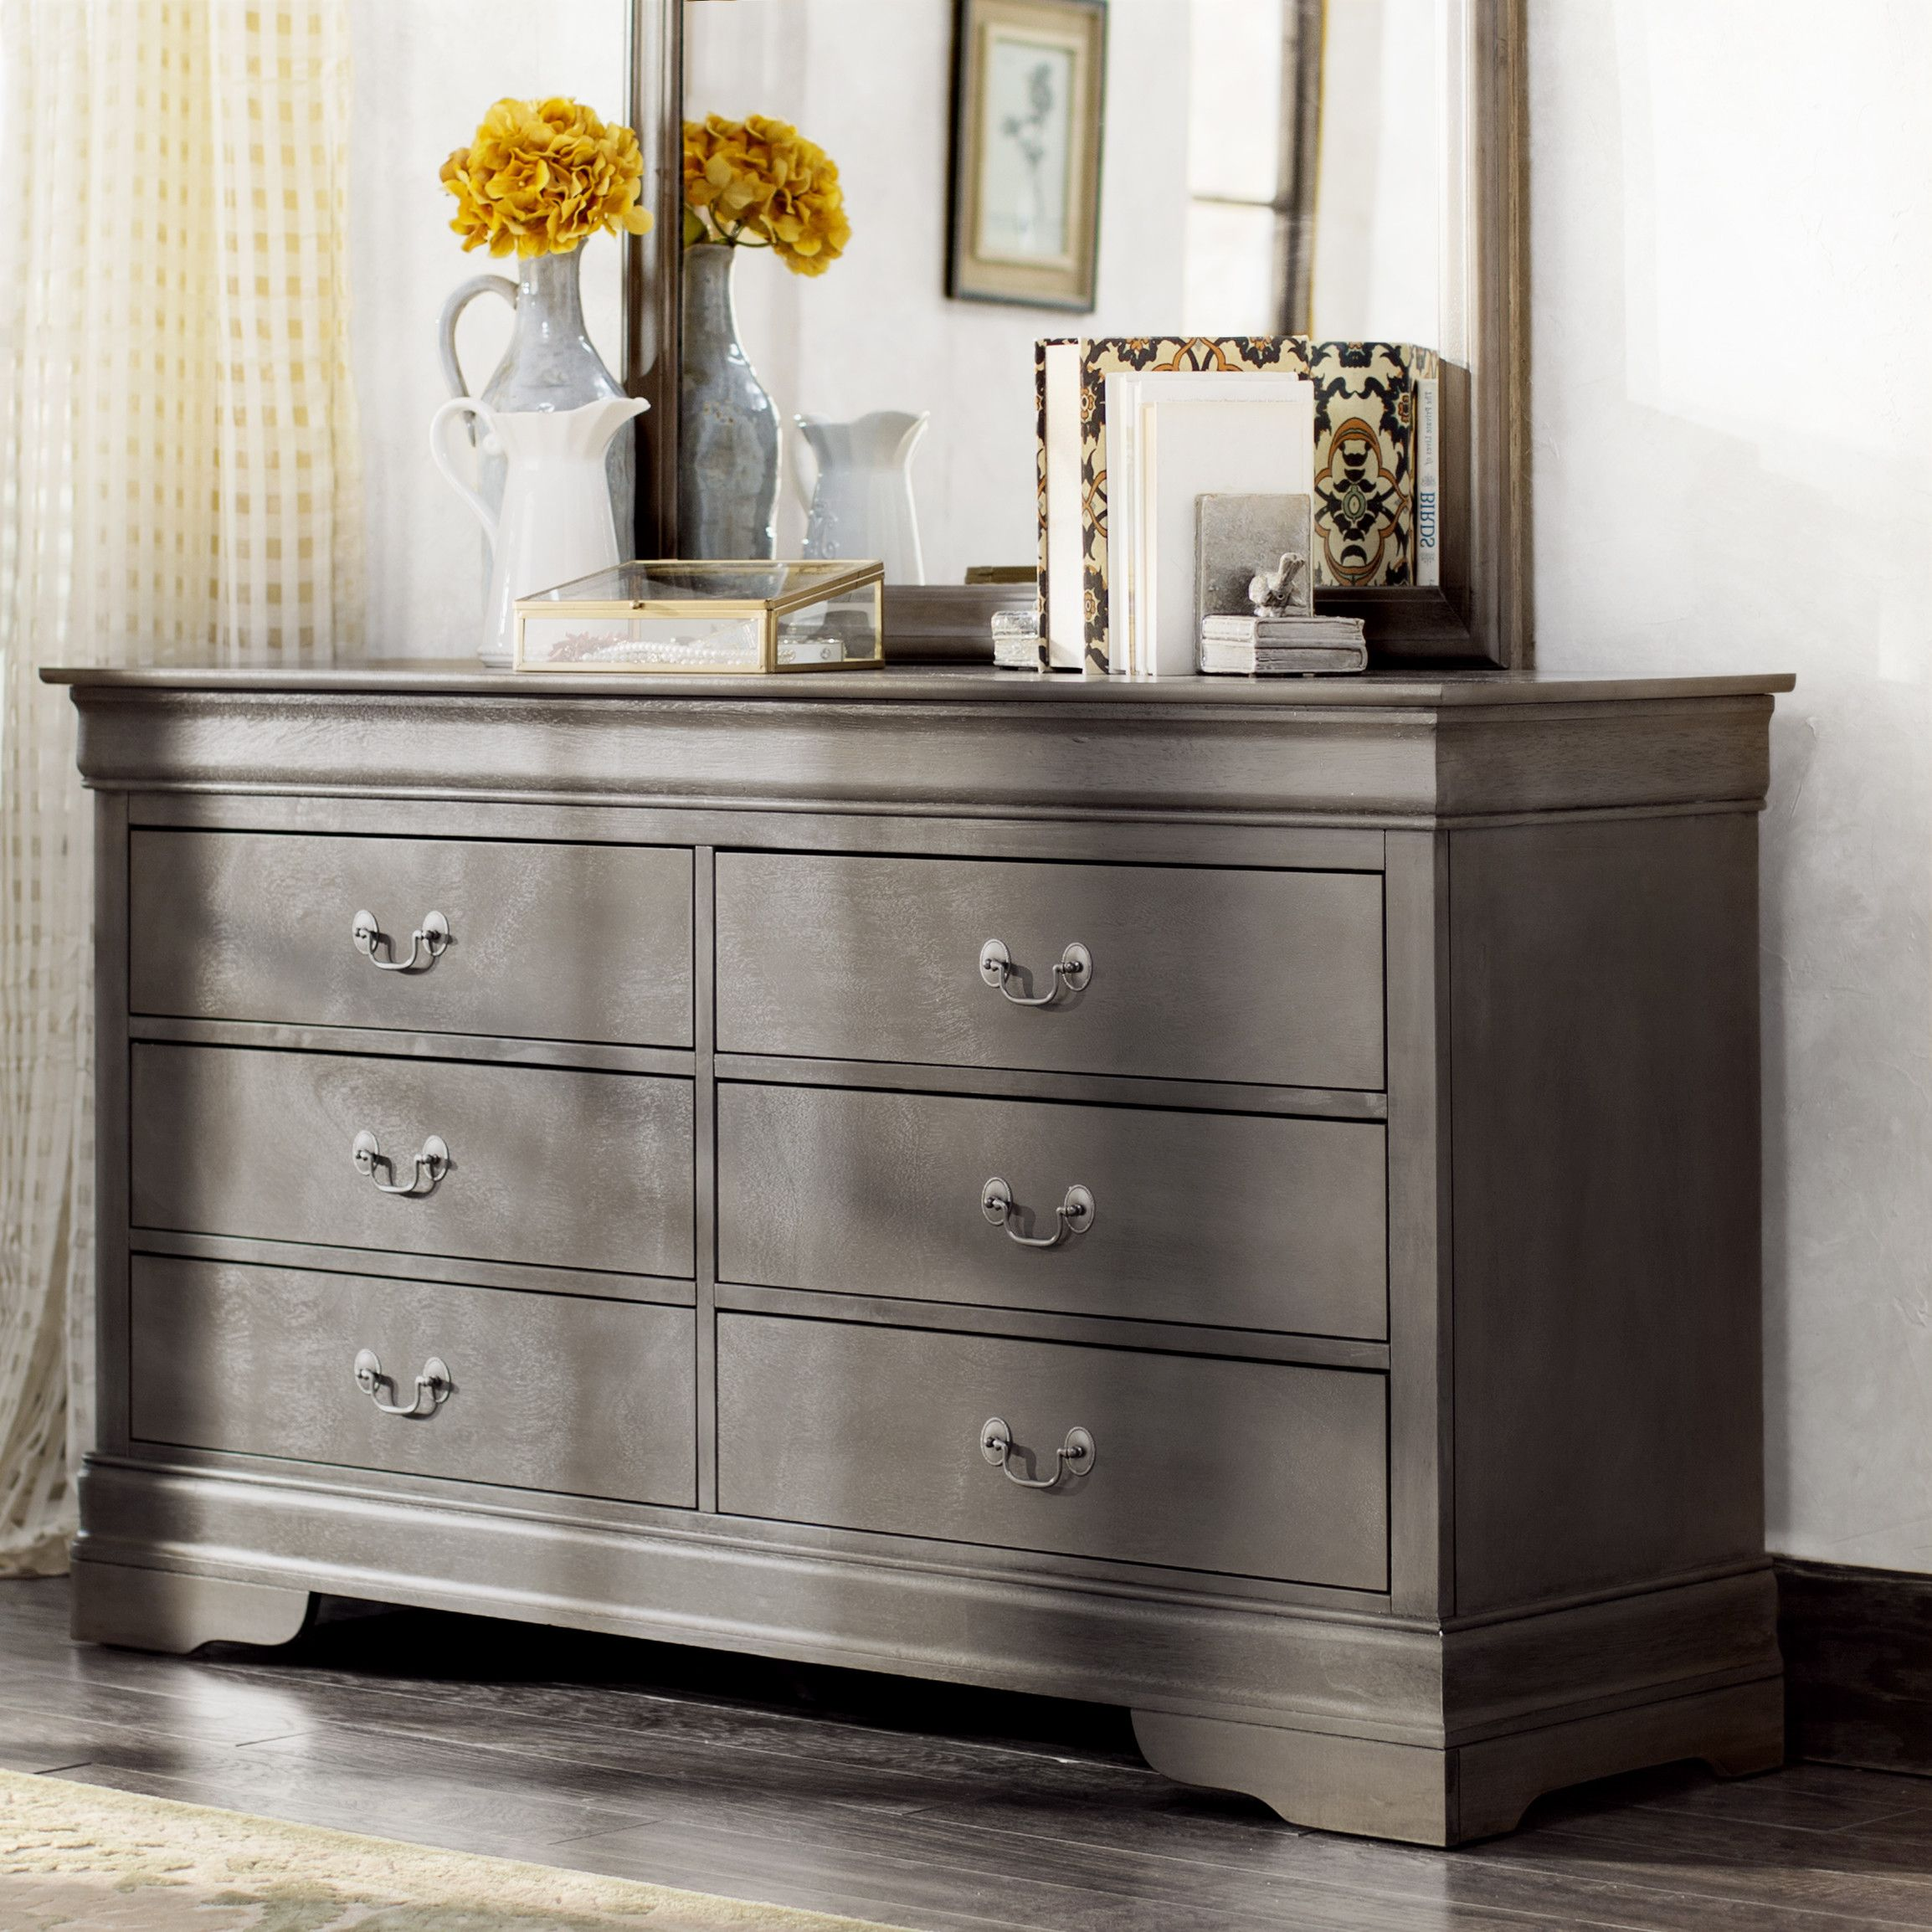 Shop Wayfair For Dressers To Match Every Style And Budget Enjoy Free Shipping Furniture Bedroom Furniture Dresser Dresser Drawers [ 2308 x 2308 Pixel ]